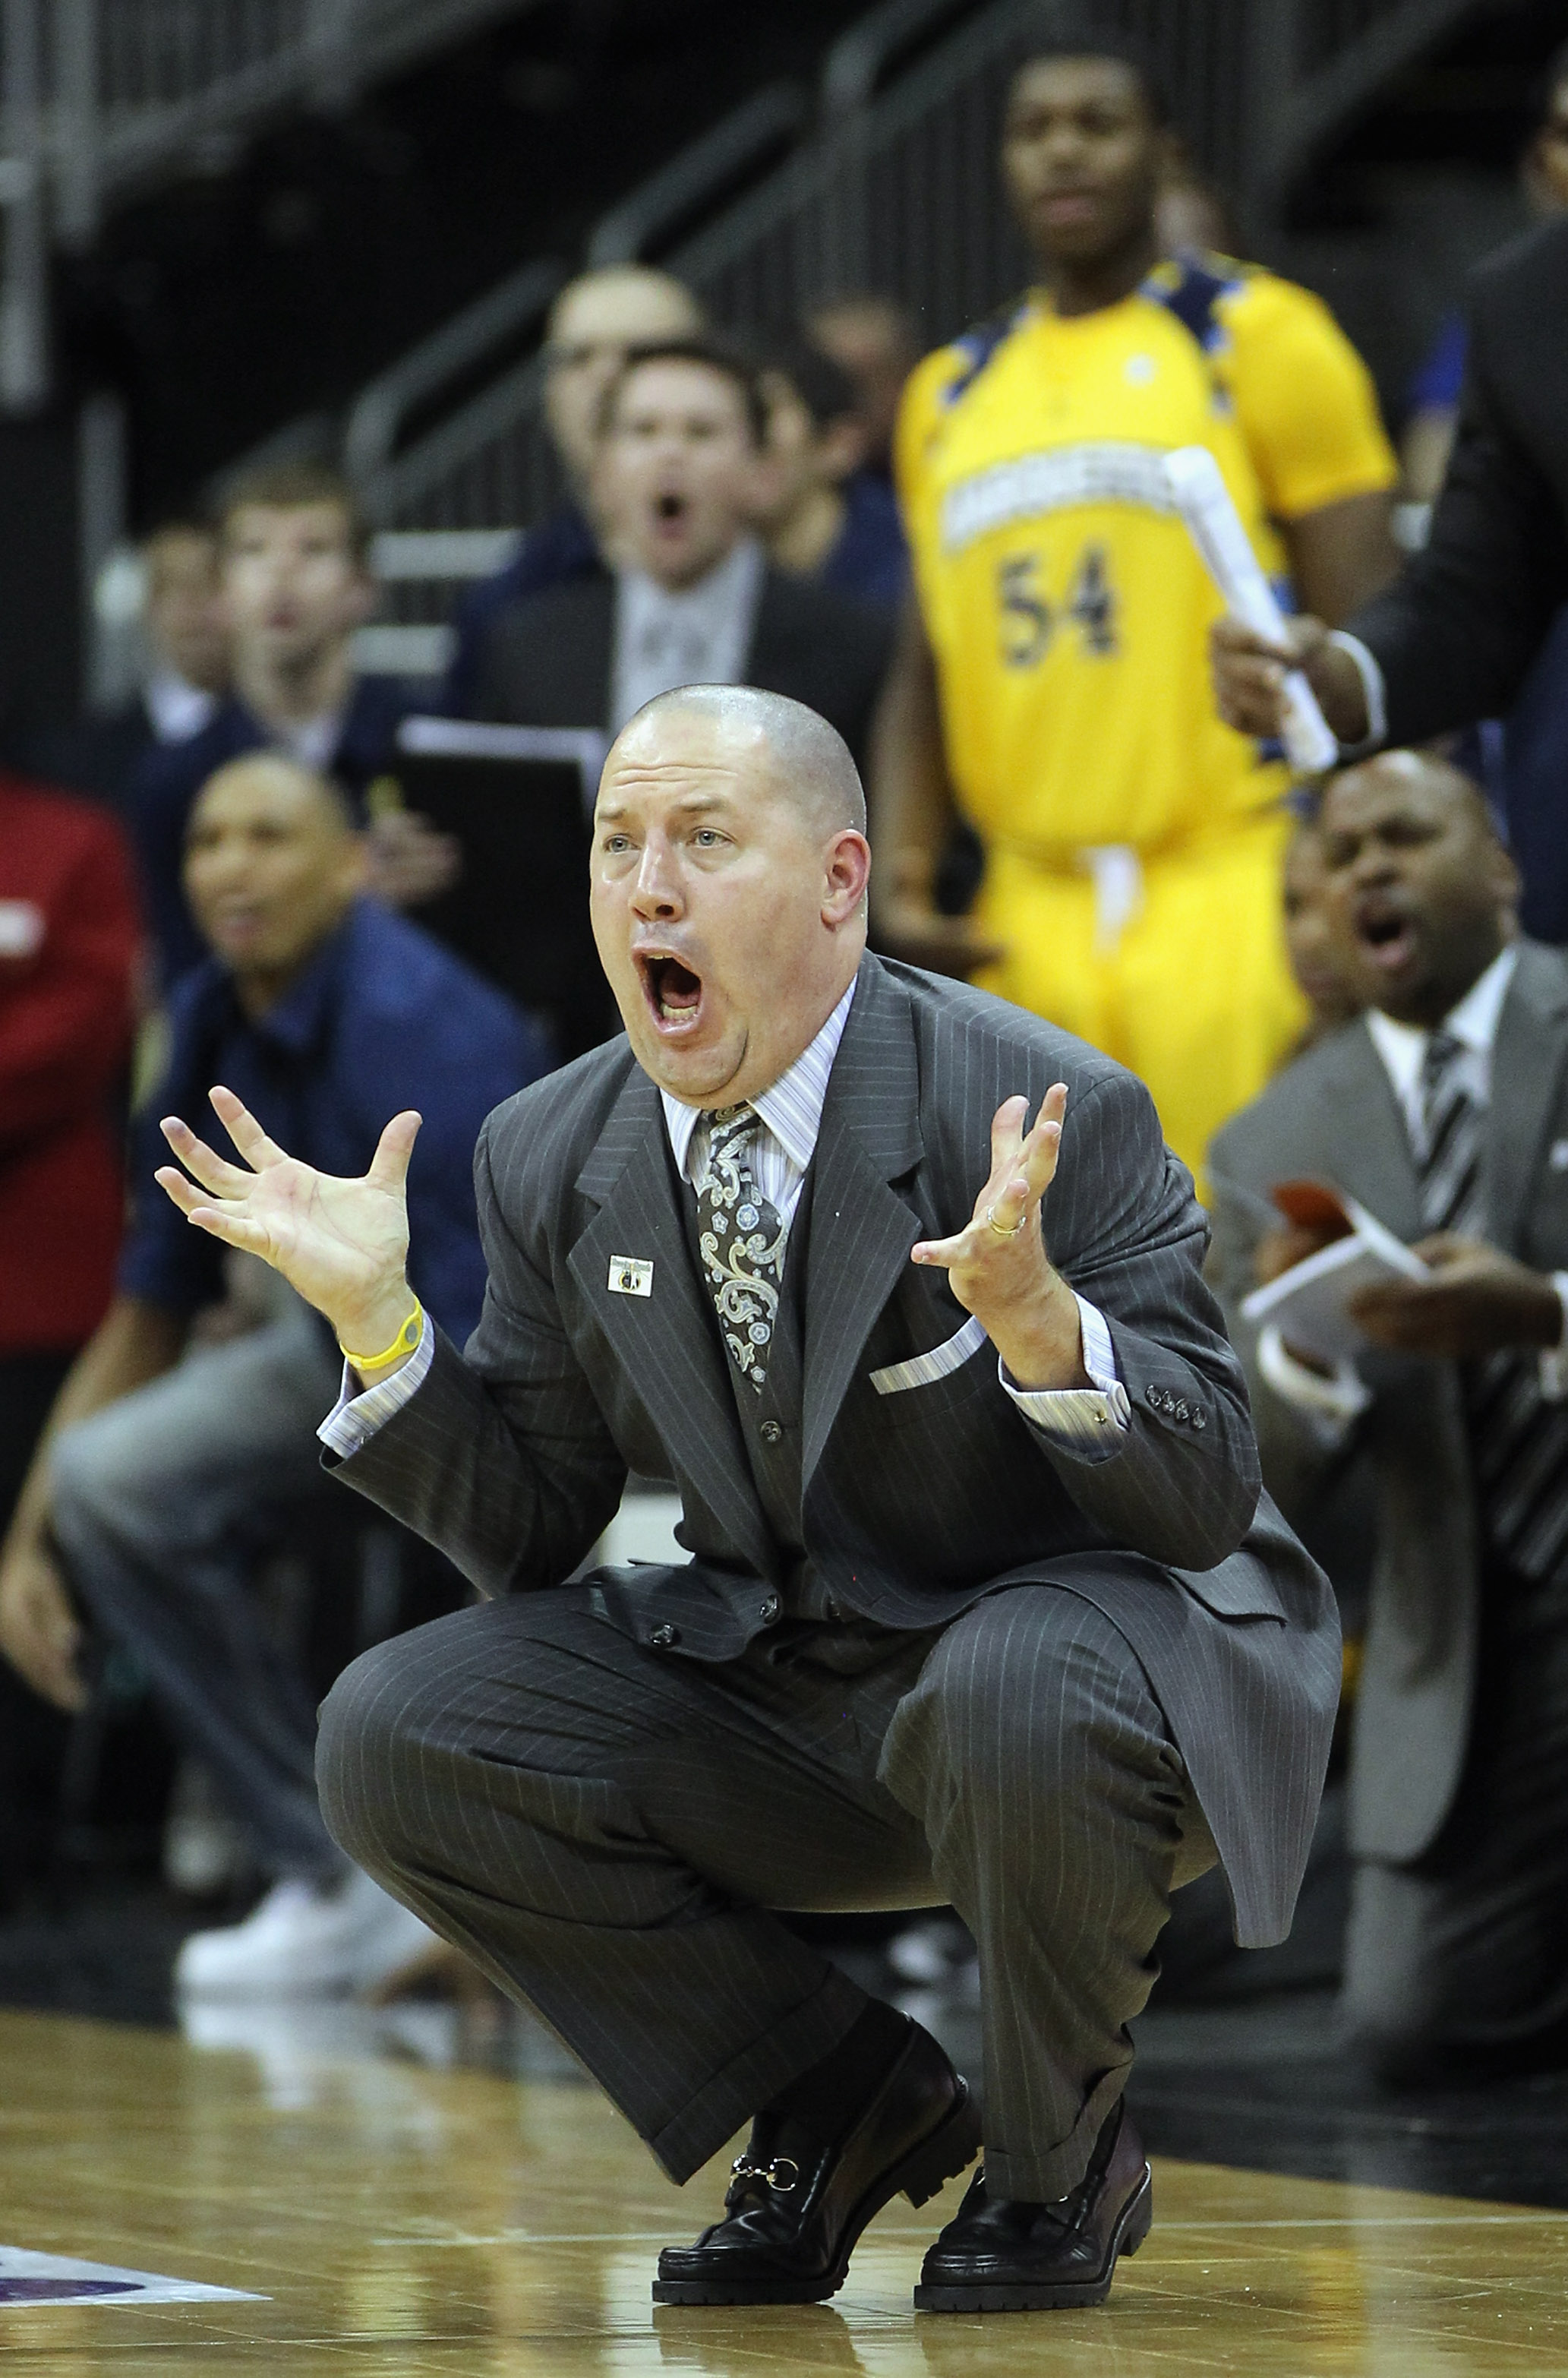 KANSAS CITY, MO - NOVEMBER 23:  Head coach Buzz Williams of the Marquette Golden Eagles reacts to a call during the CBE Classic consolation game against the Gonzaga Bulldogs on November 23, 2010 at the Sprint Center in Kansas City, Missouri.  (Photo by Ja